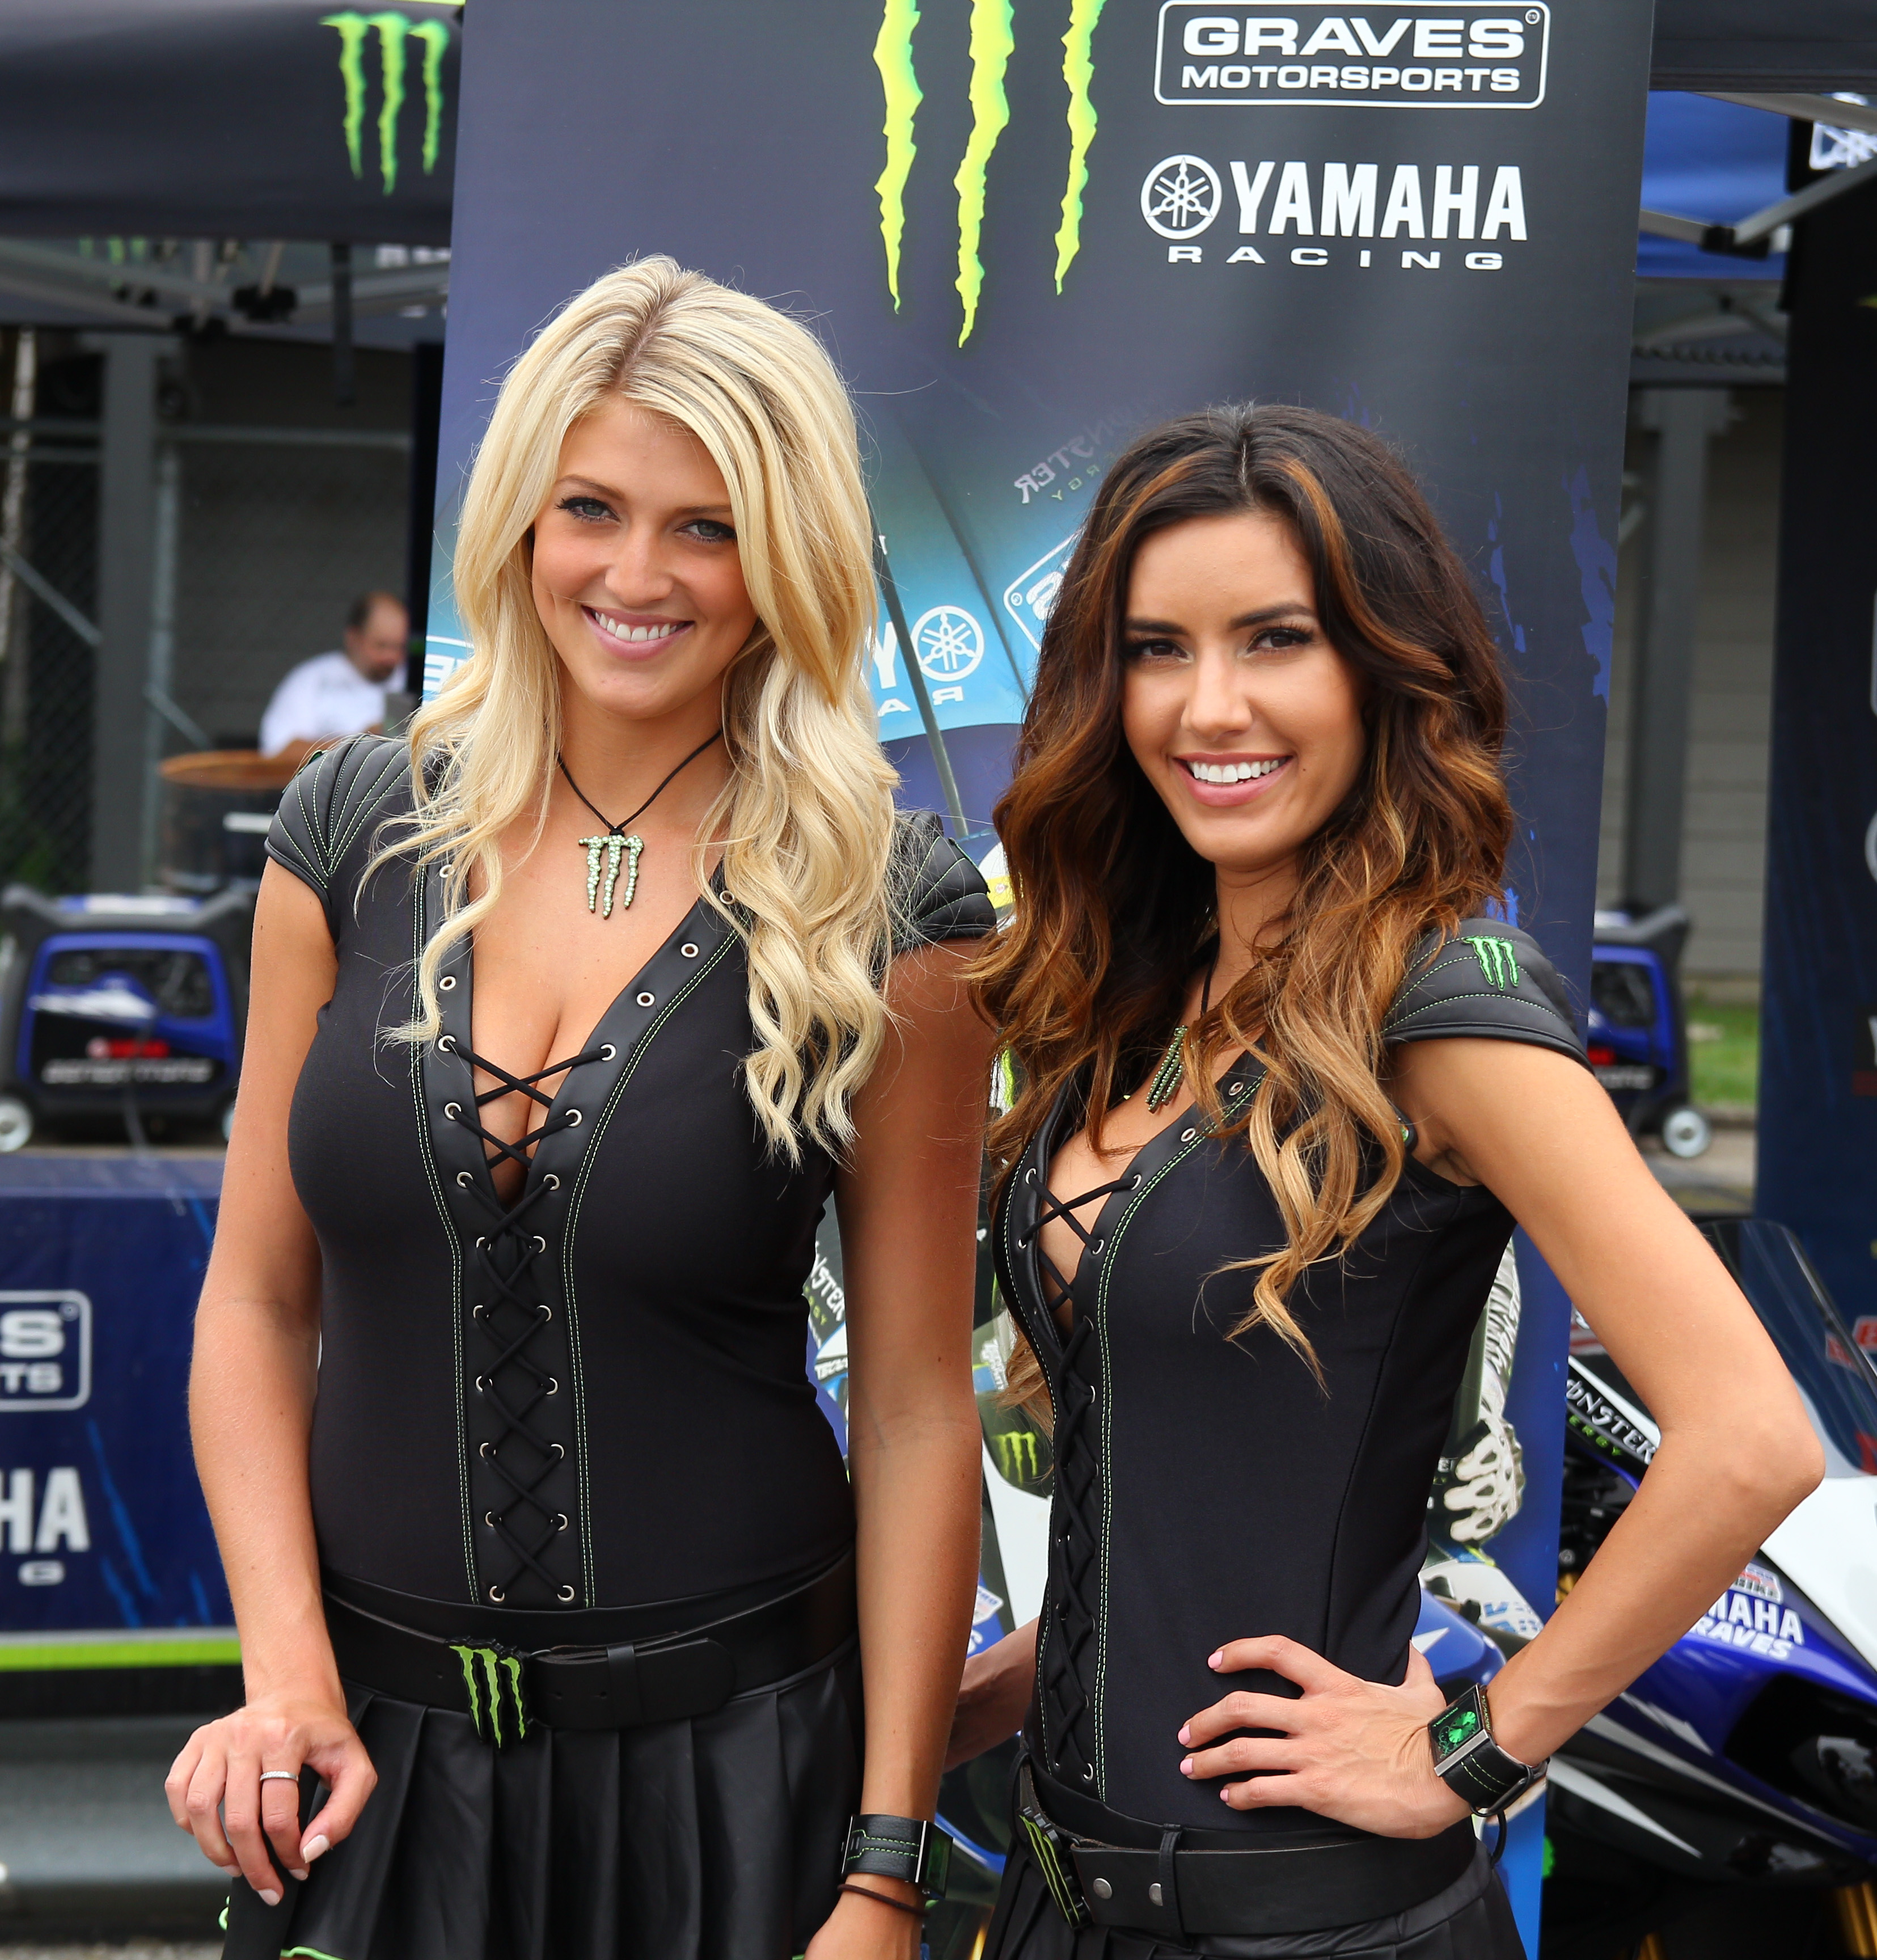 Monster Energy Drink Girls | Flickr - Photo Sharing